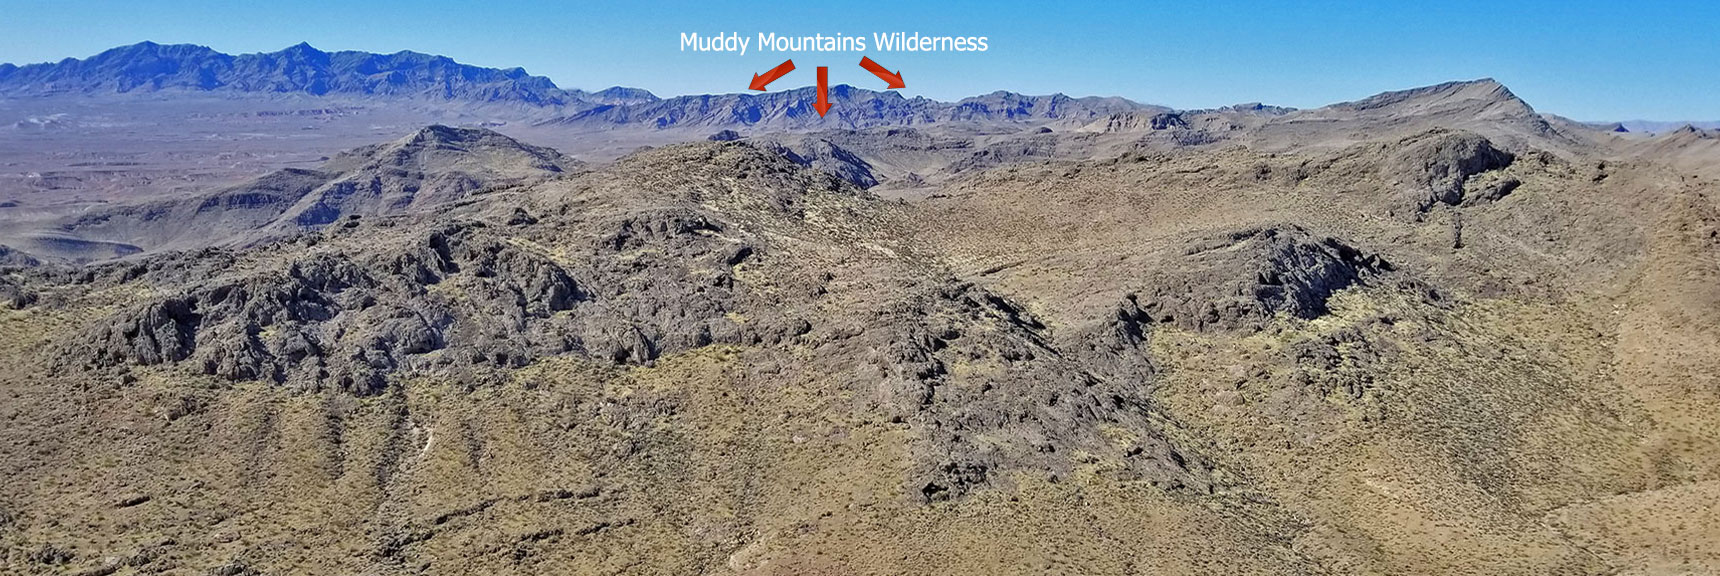 Muddy Mountains Wilderness NW High Point Panorama Slide 9